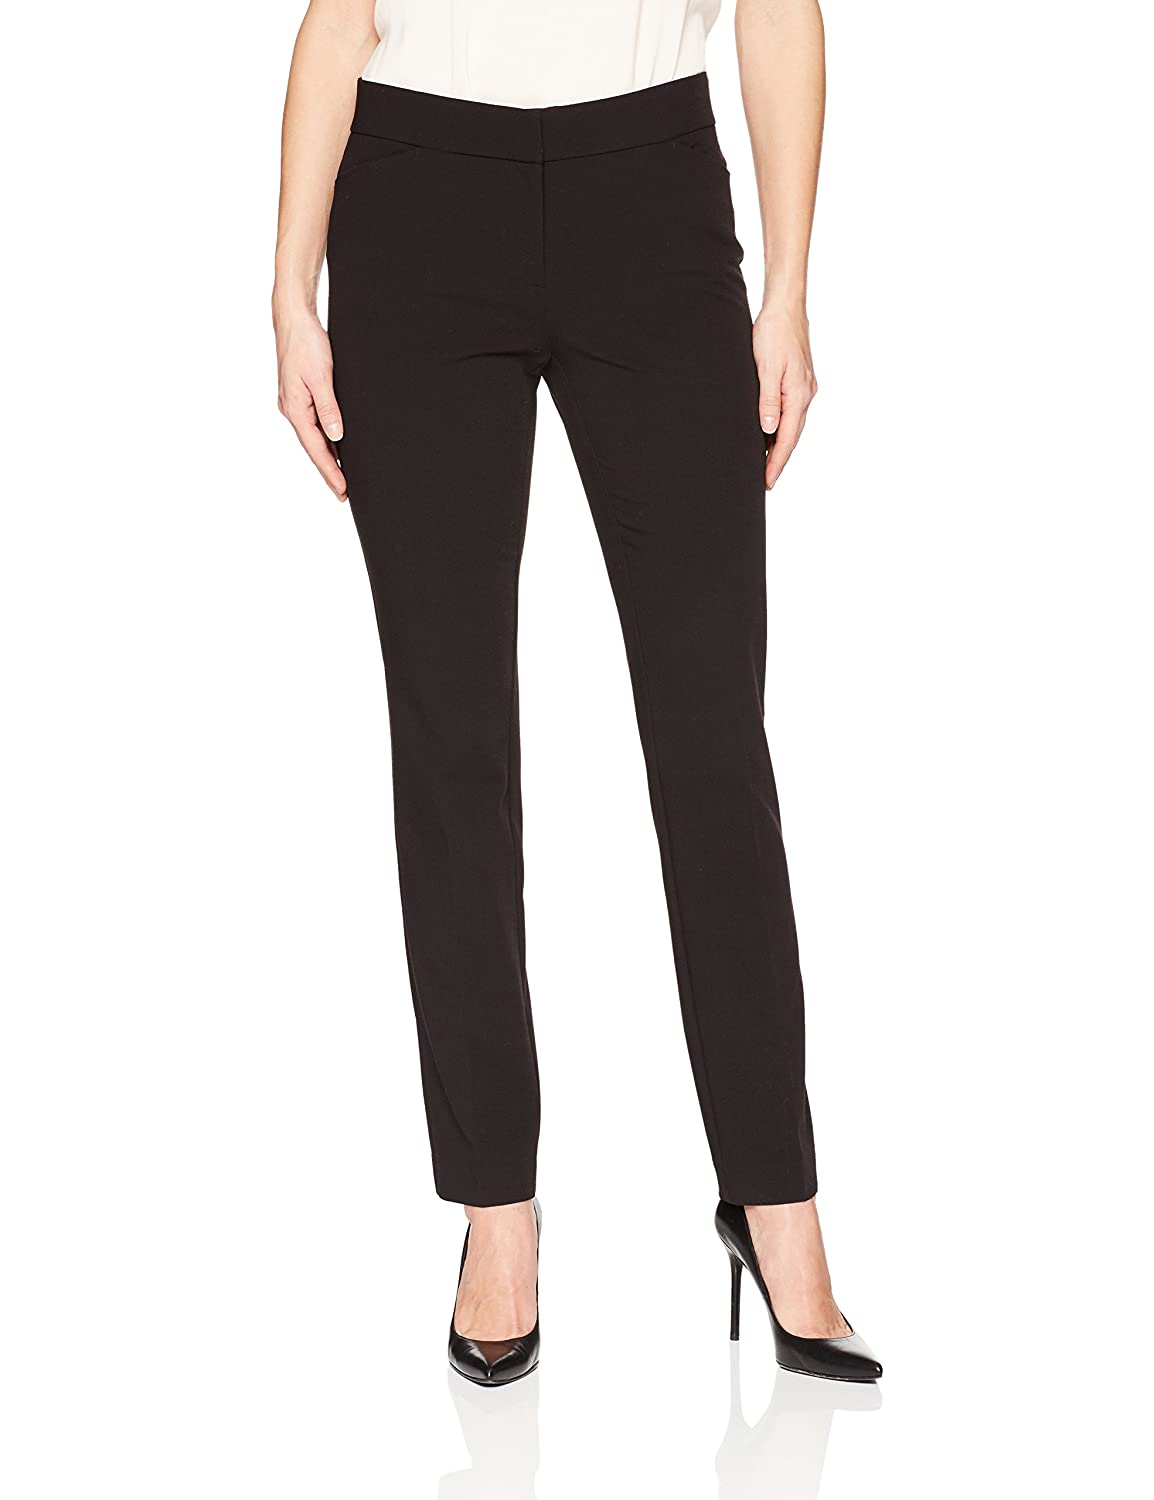 Lark & Ro Womens Classic Fit Refined Twill Stretch Straight Leg Pant LABF7002